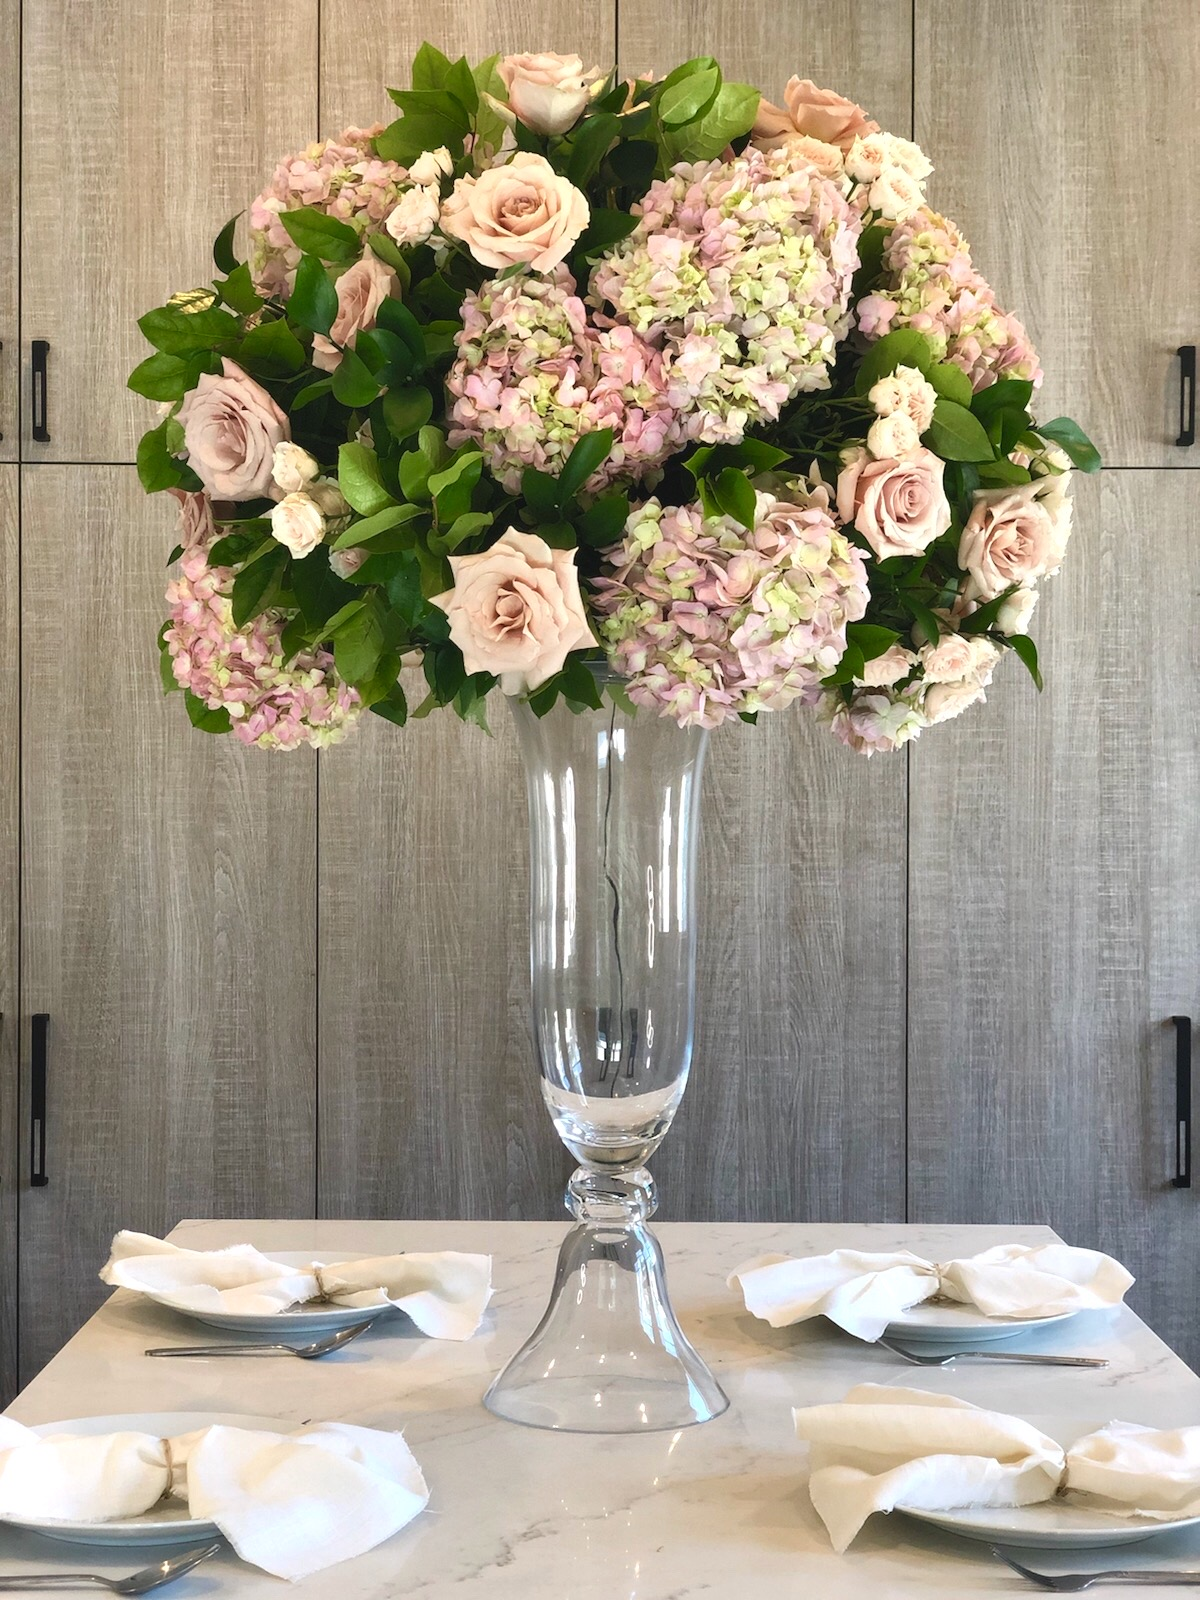 Lush Tall Florals in Vase